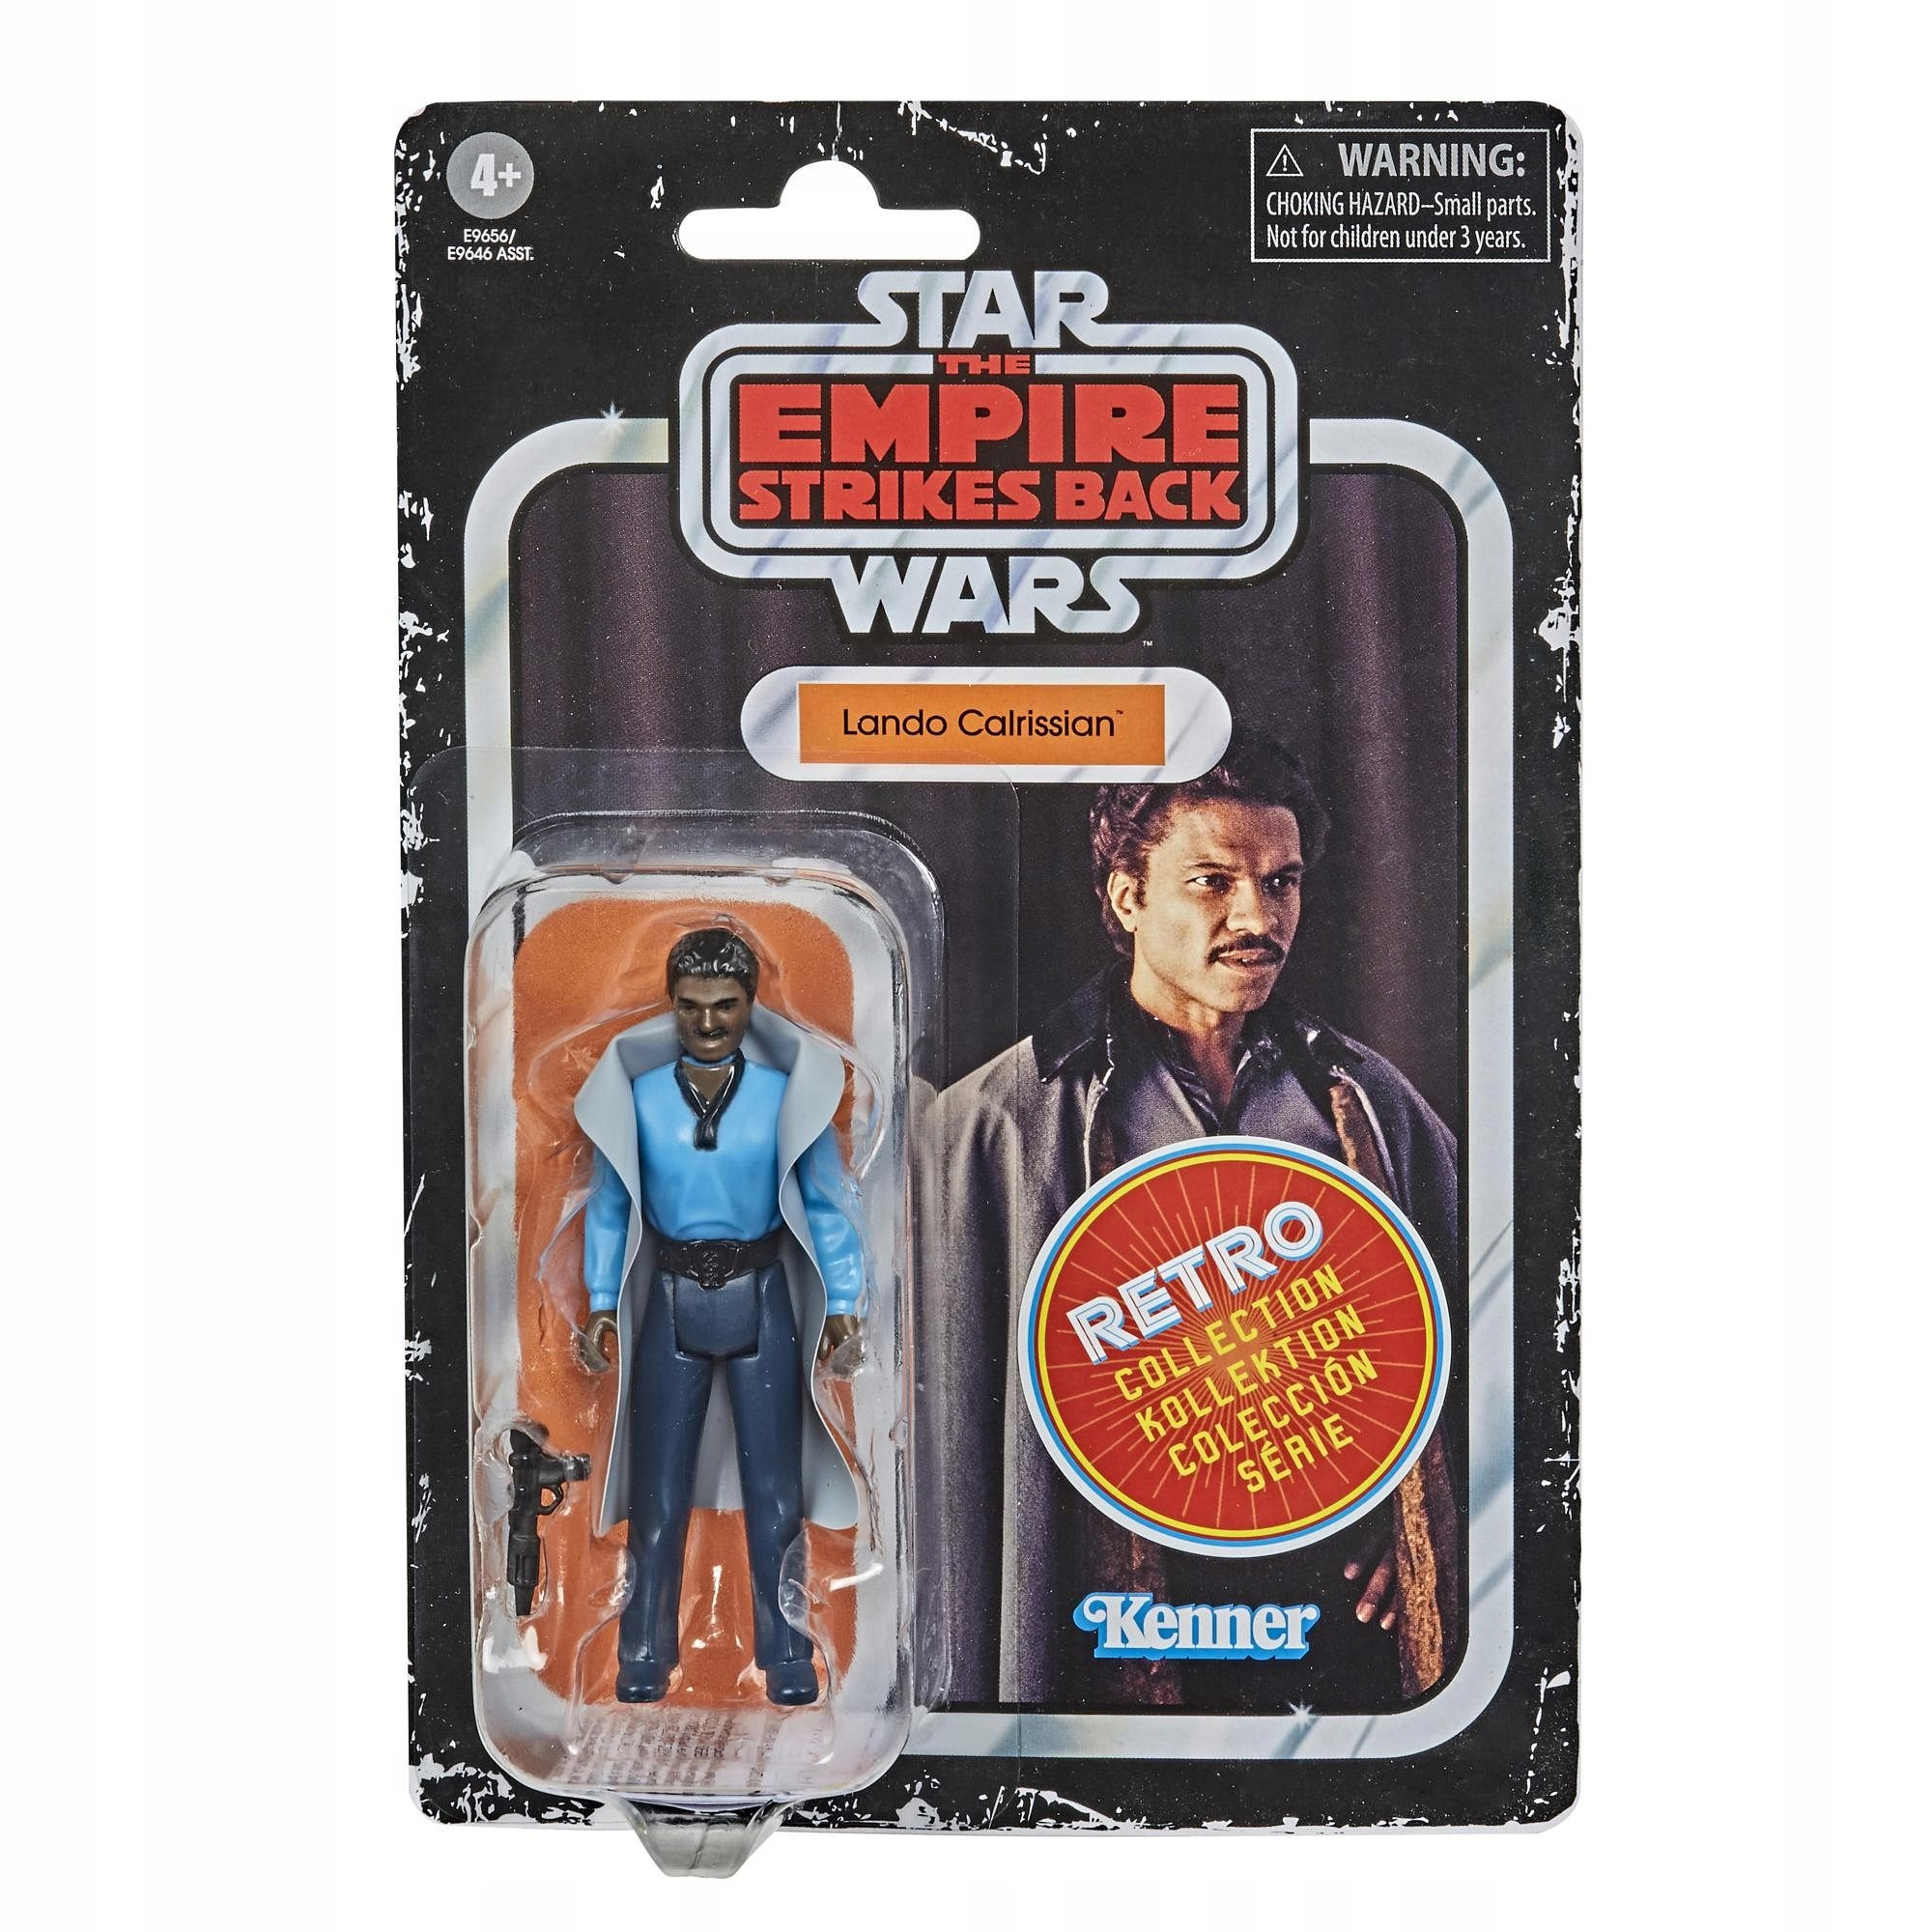 Star Wars Retro LANDO CALRISSIAN Star Wars